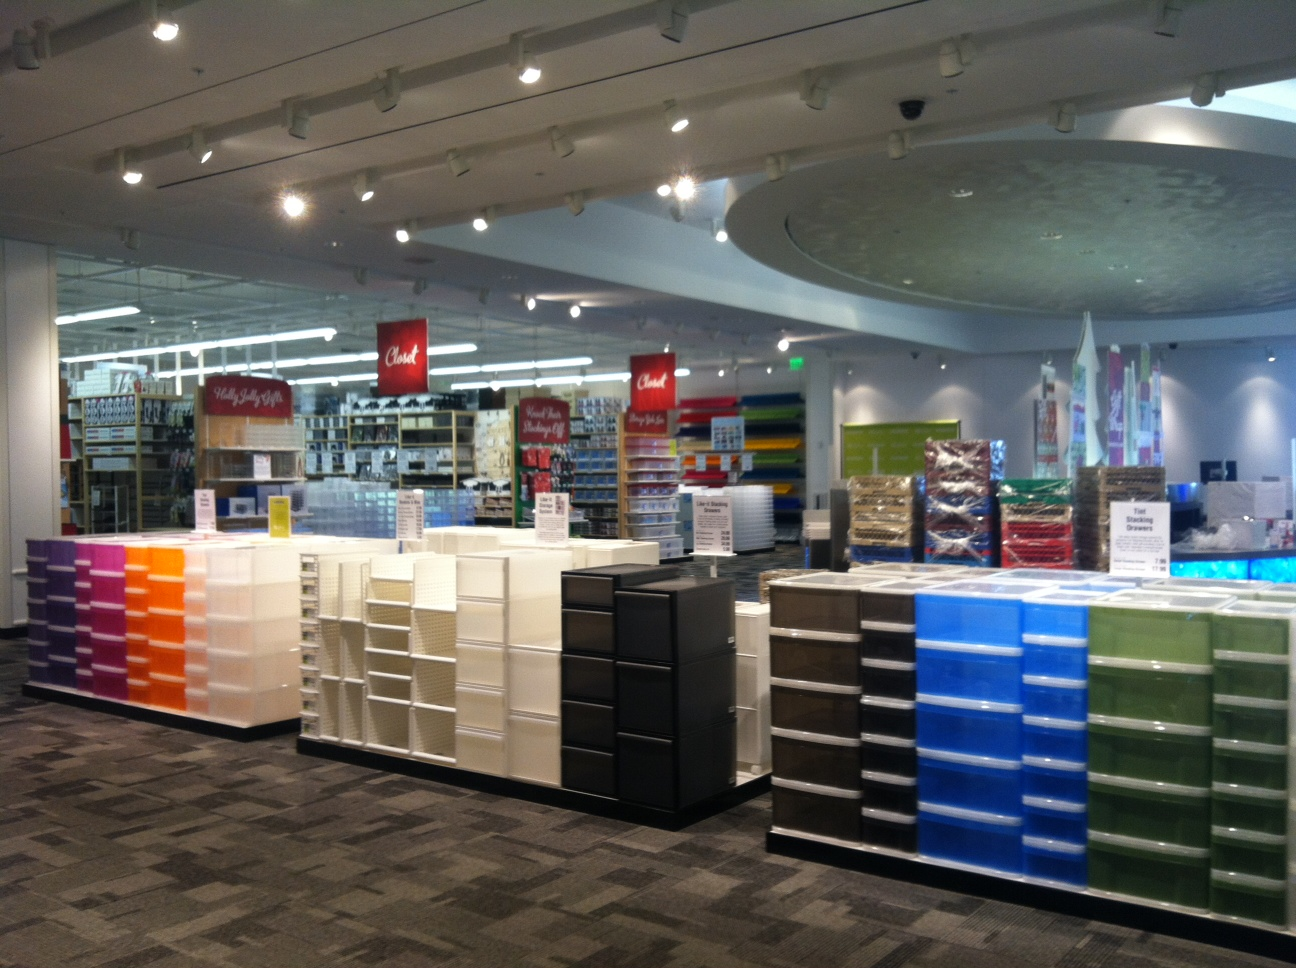 The container store buckhead reopens in new location claire kurtz is the well organized woman - Container store home ...